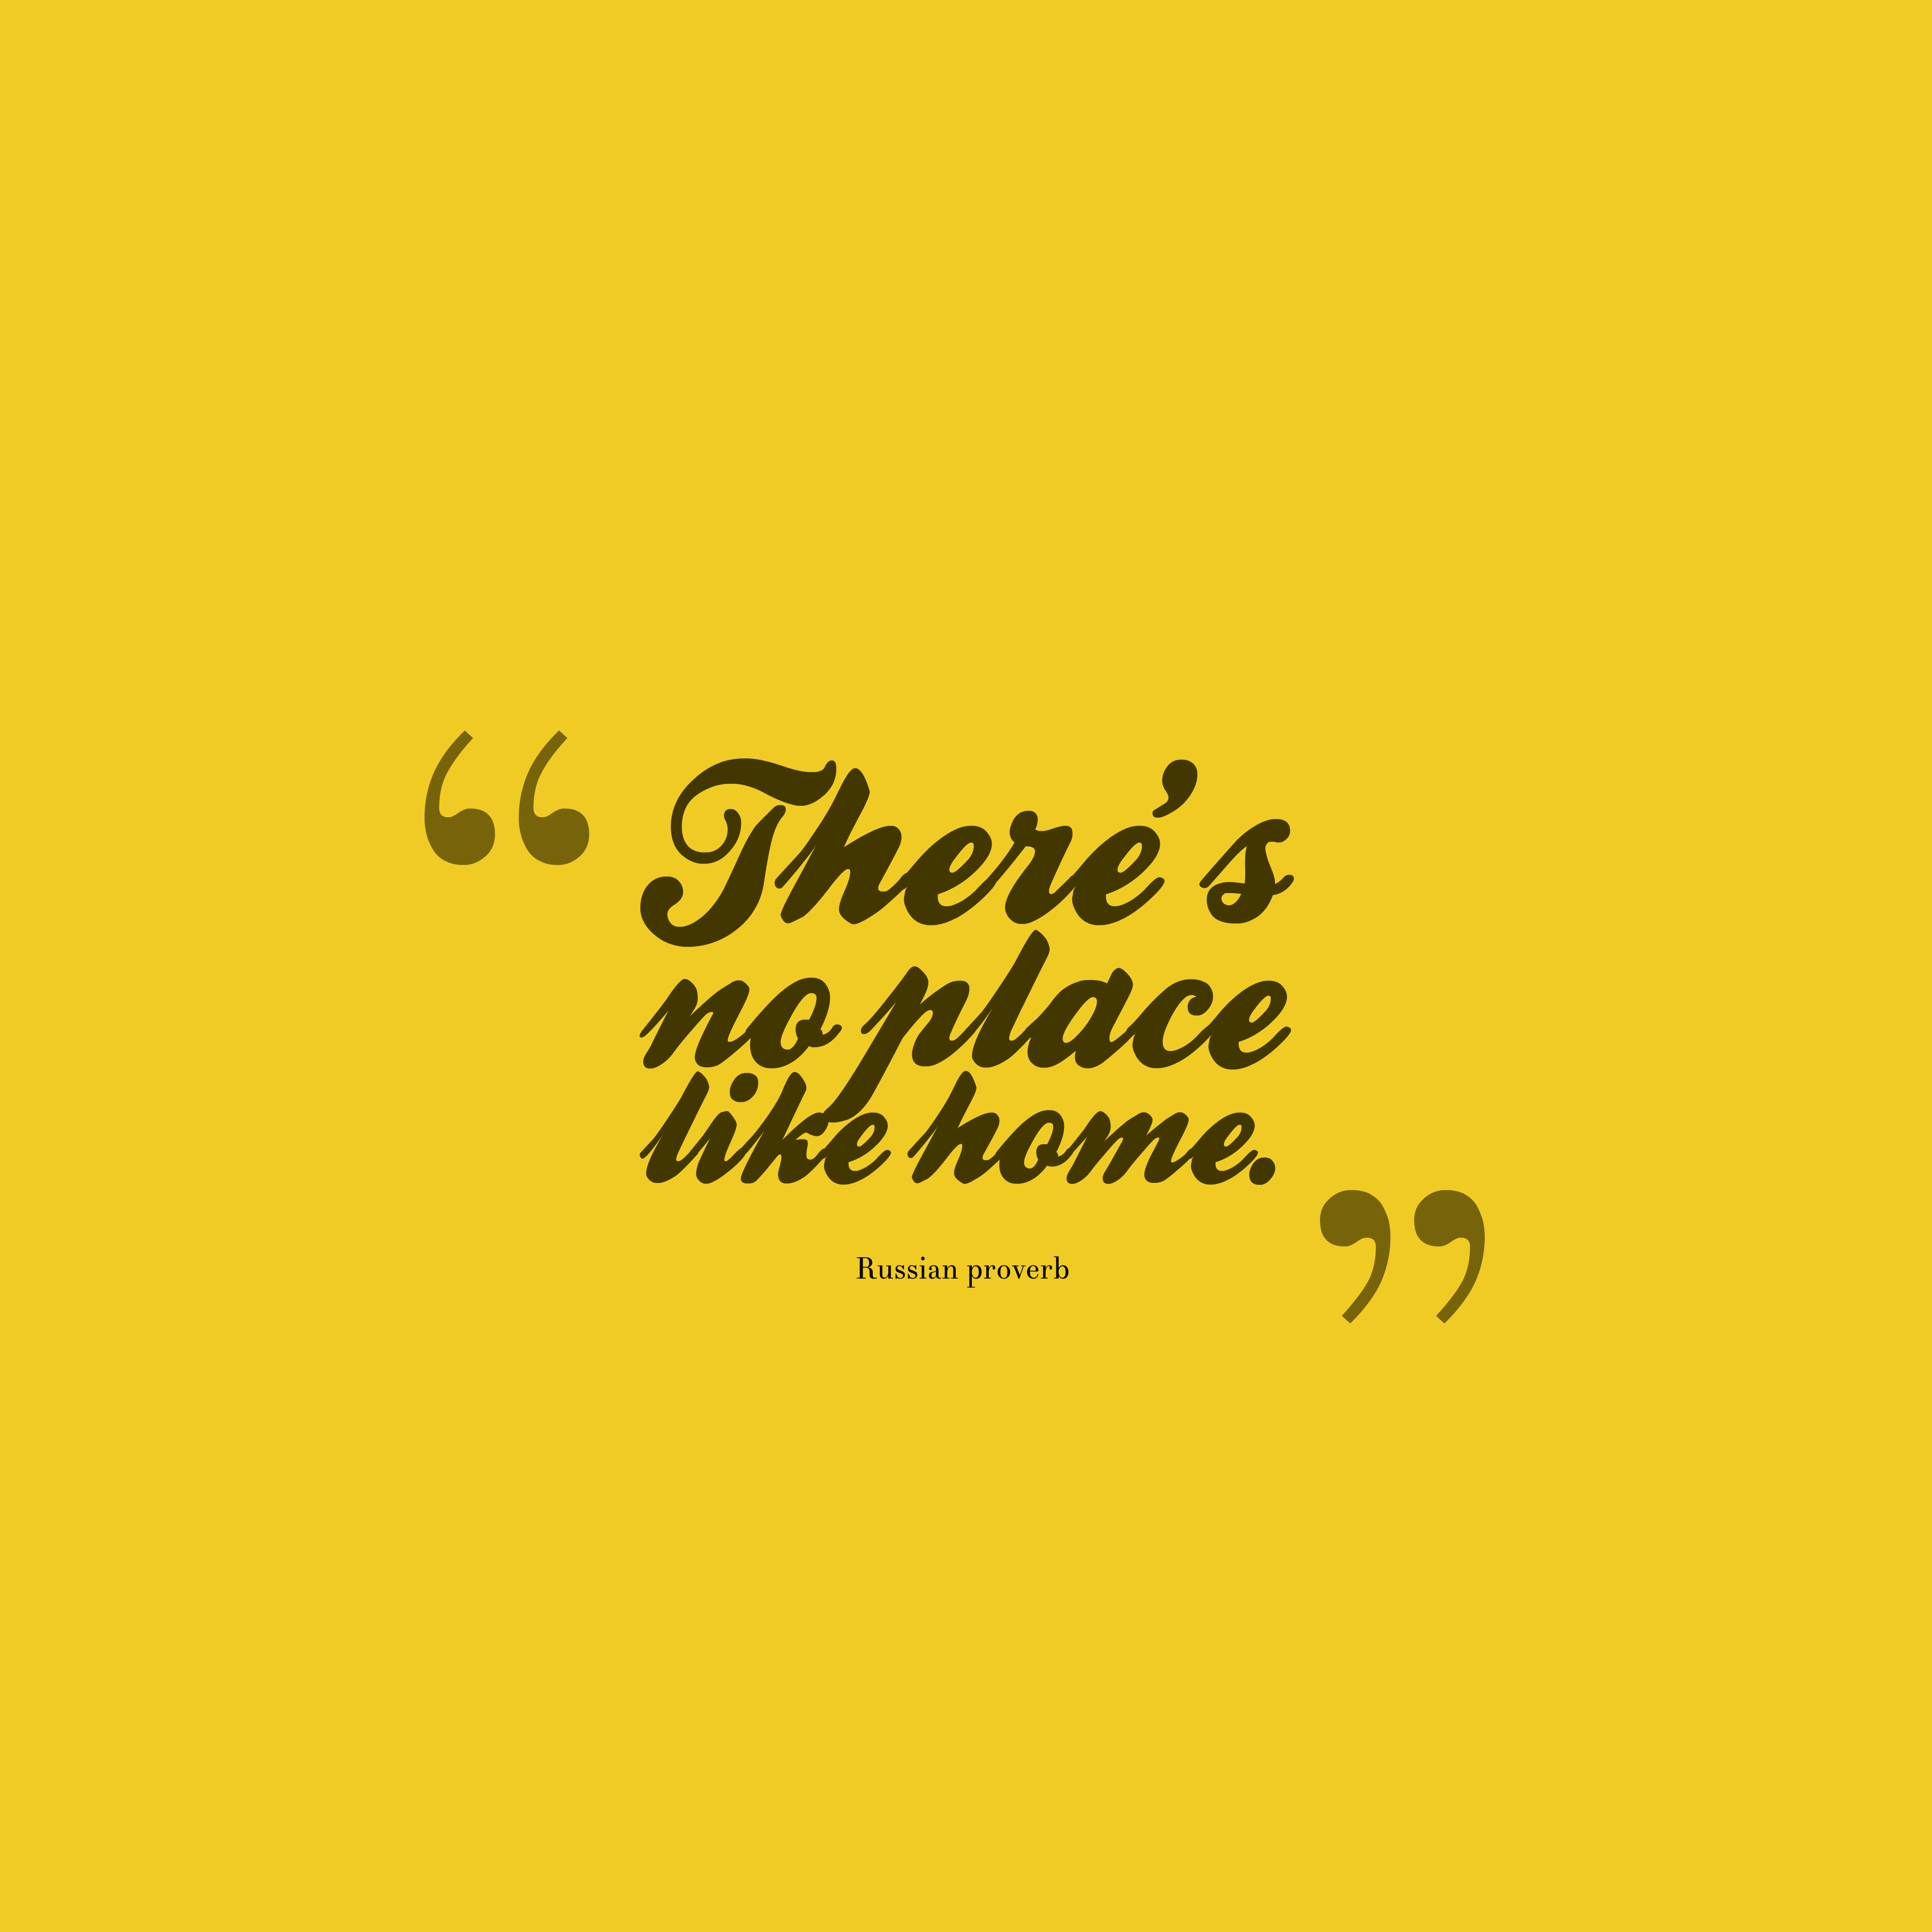 Russian Proverb About Home